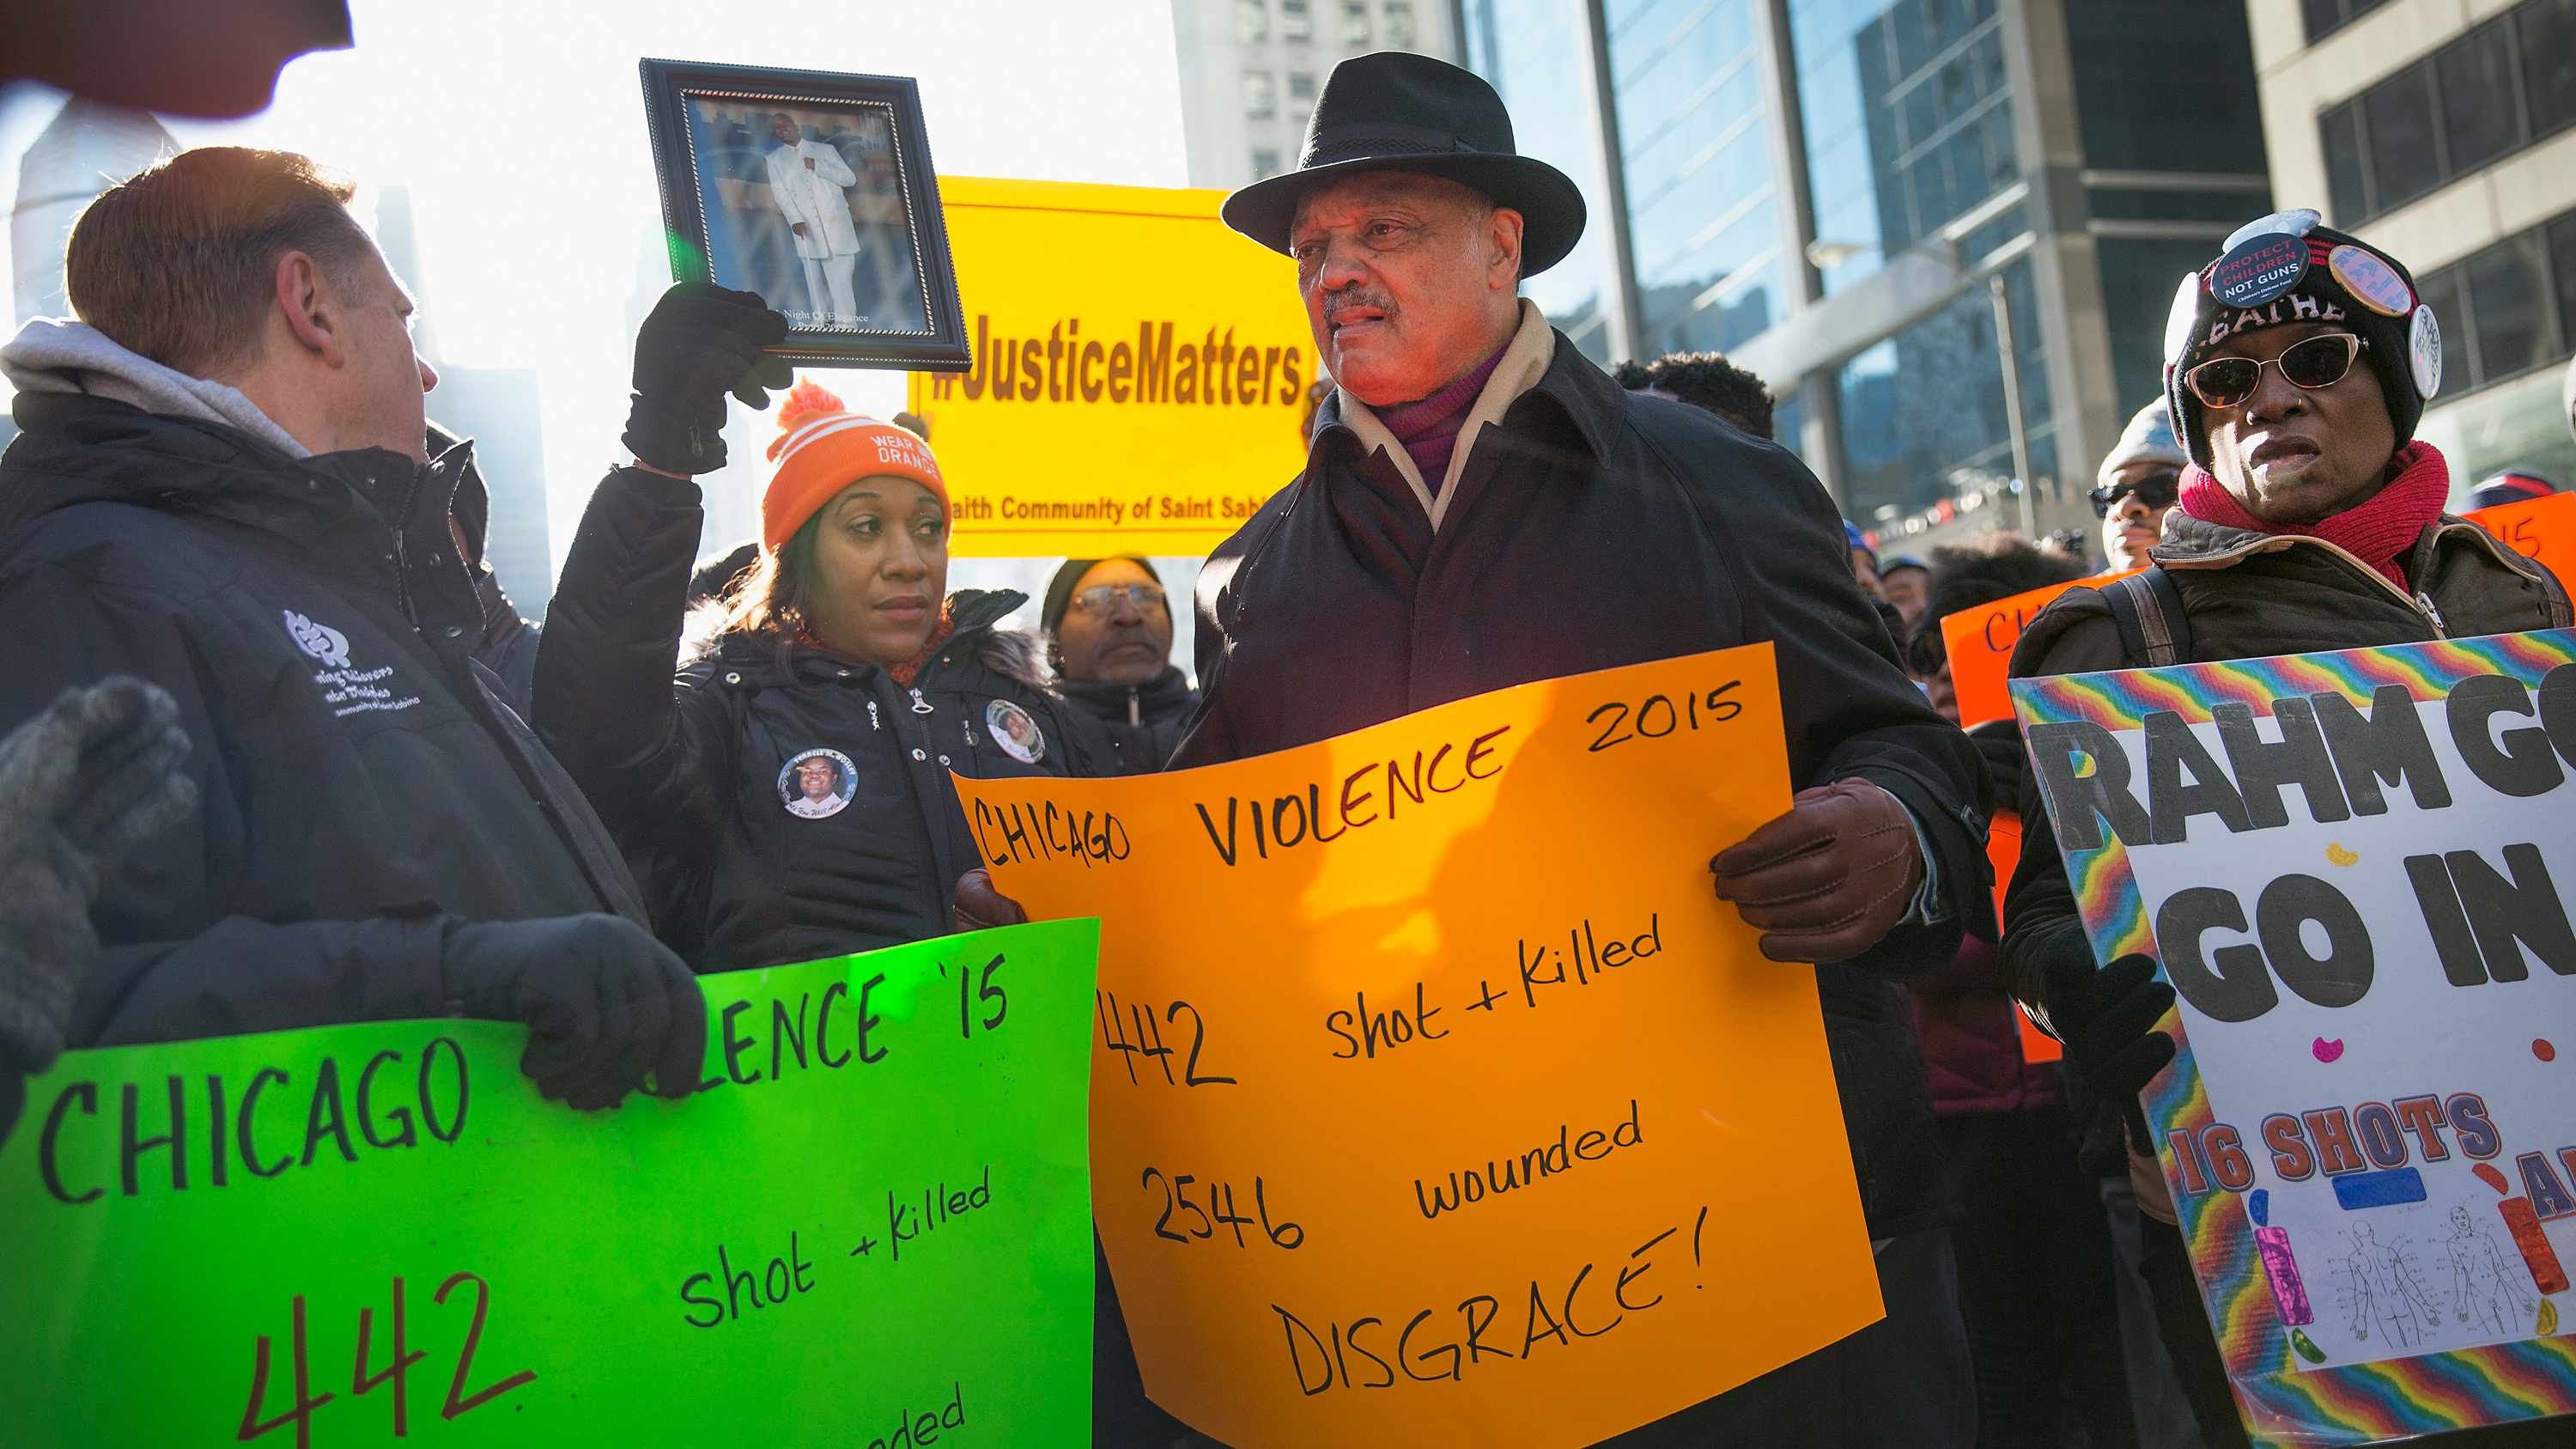 Demonstrators in Chicago call for an end to gun violence and resignation of Chicago Mayor Rahm Emanuel. Chicago police are under scrutiny following the release of a video showing the shooting of 17-year-old Laquan McDonald by a Chicago police officer. Scott Olson/Getty Images